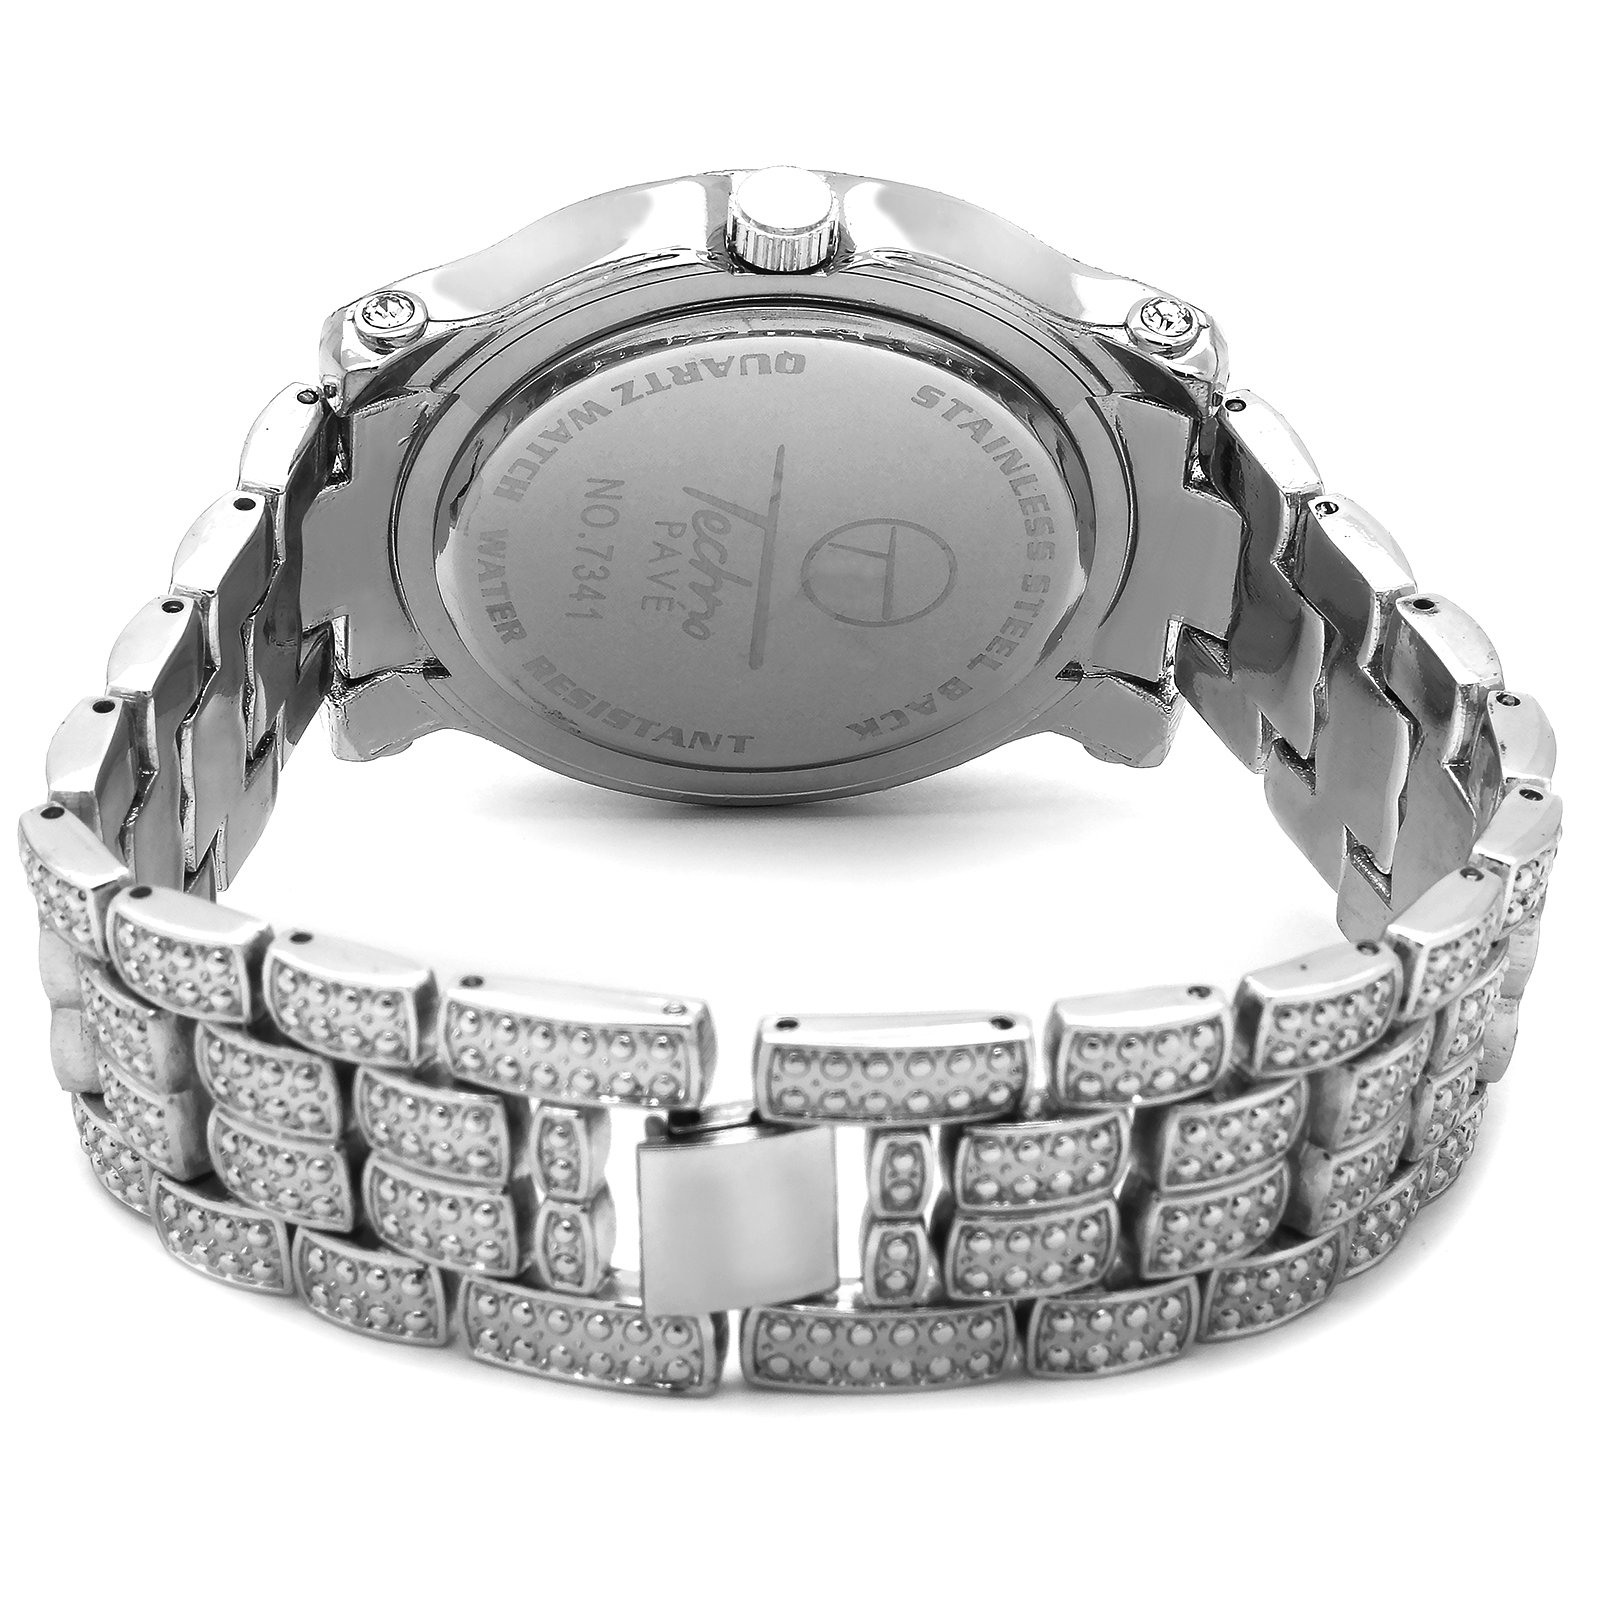 Iced Out Pave Silver Tone Hip Hop Men's Bling Bling Silver Metal Band Watch Watches by Technoking (Image #3)